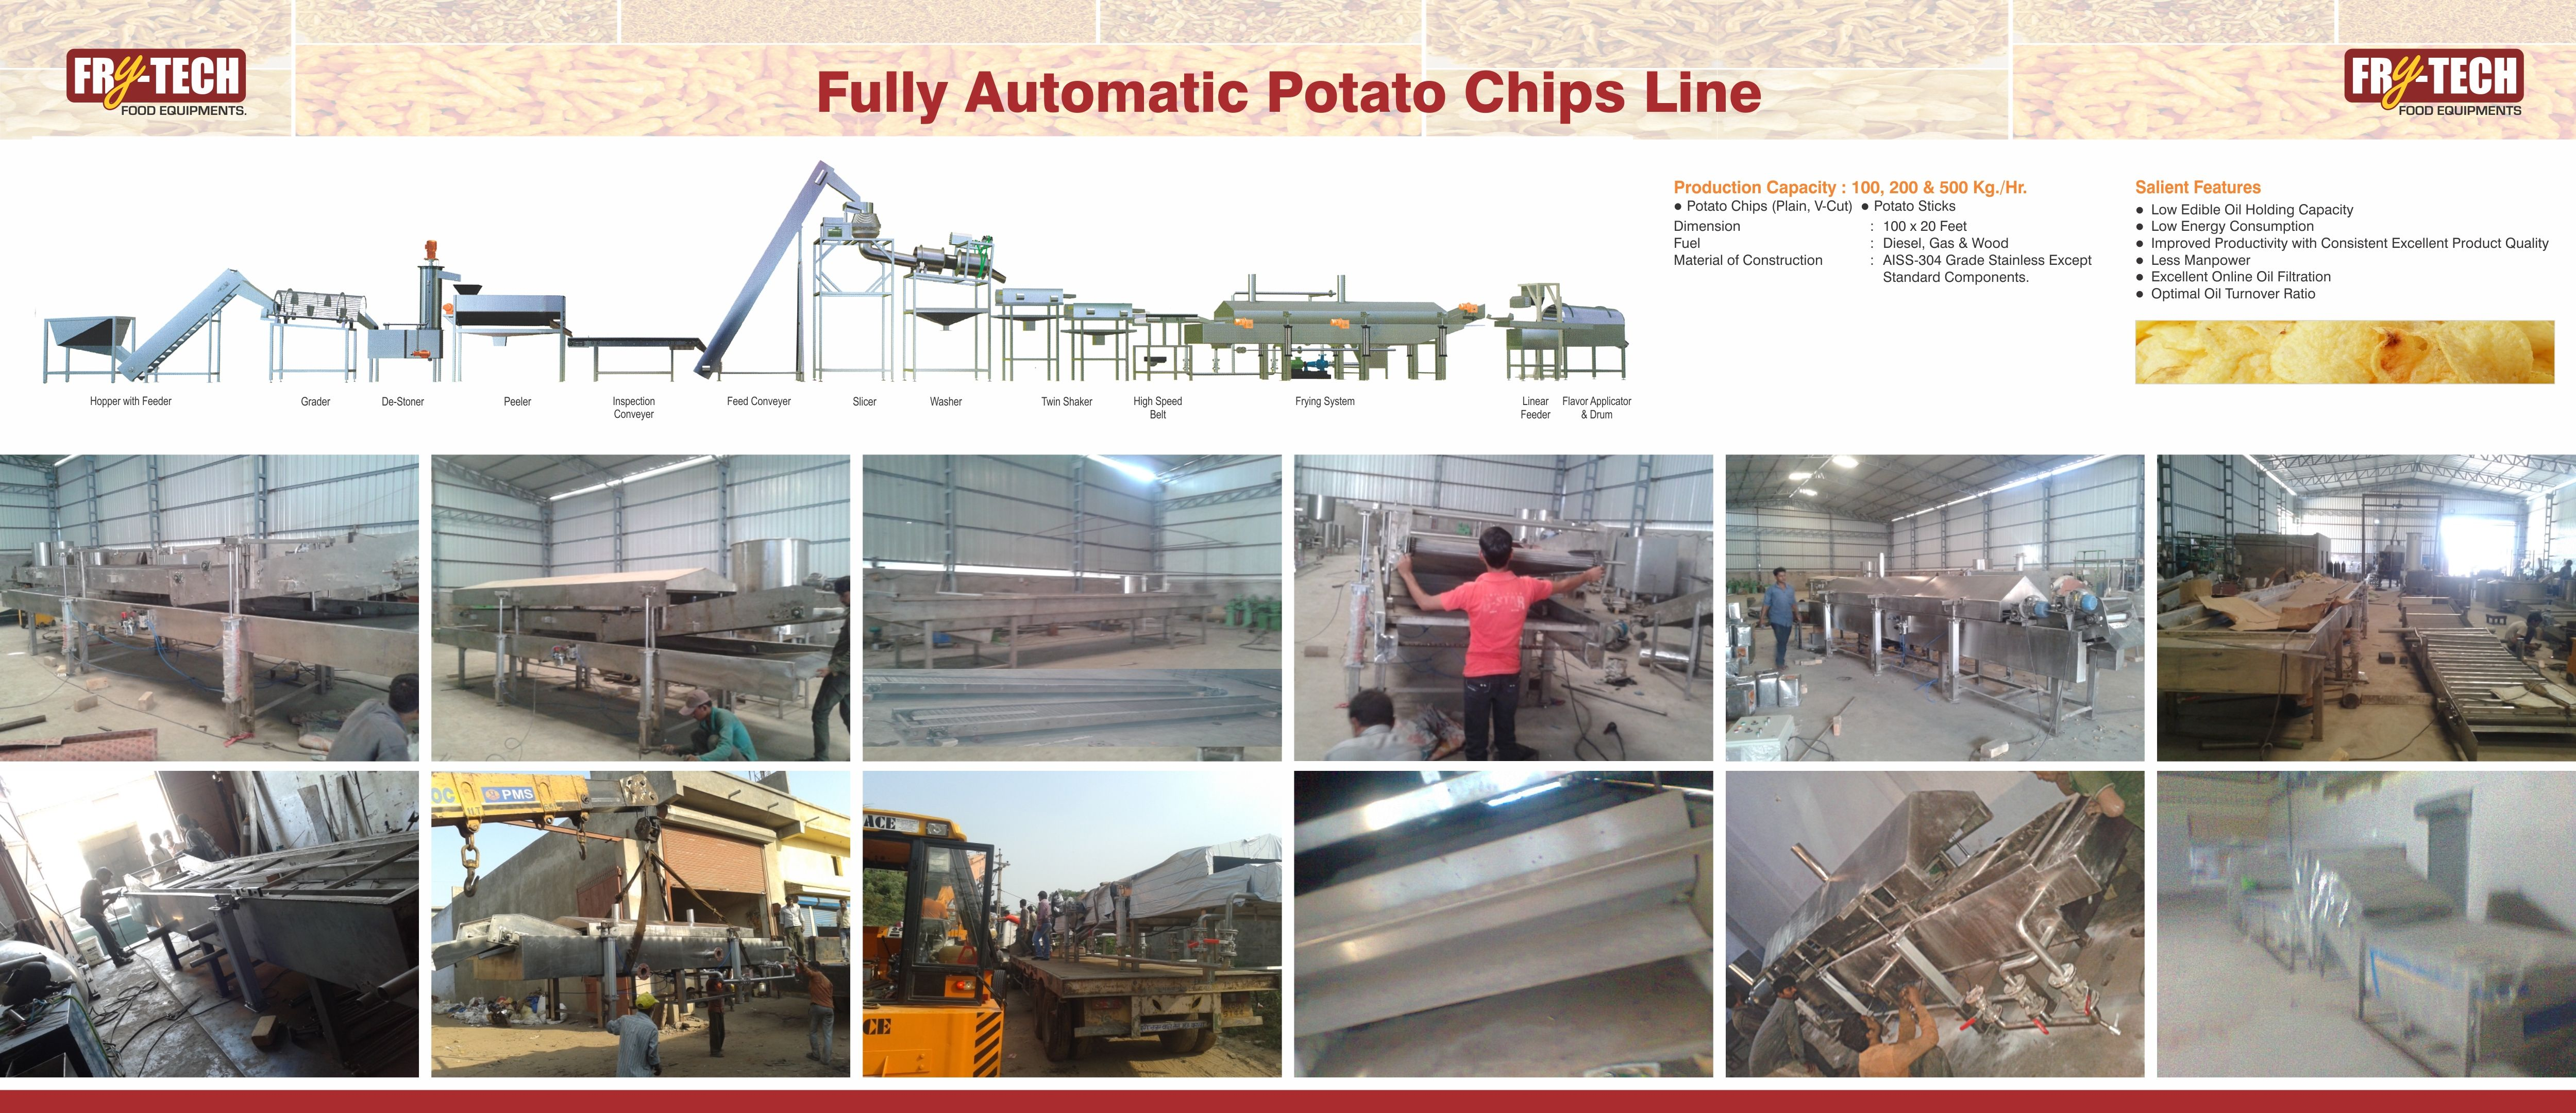 Http Www Frytechfoodequipment Com Products Html Food Equipment Potato Chips Product Offering